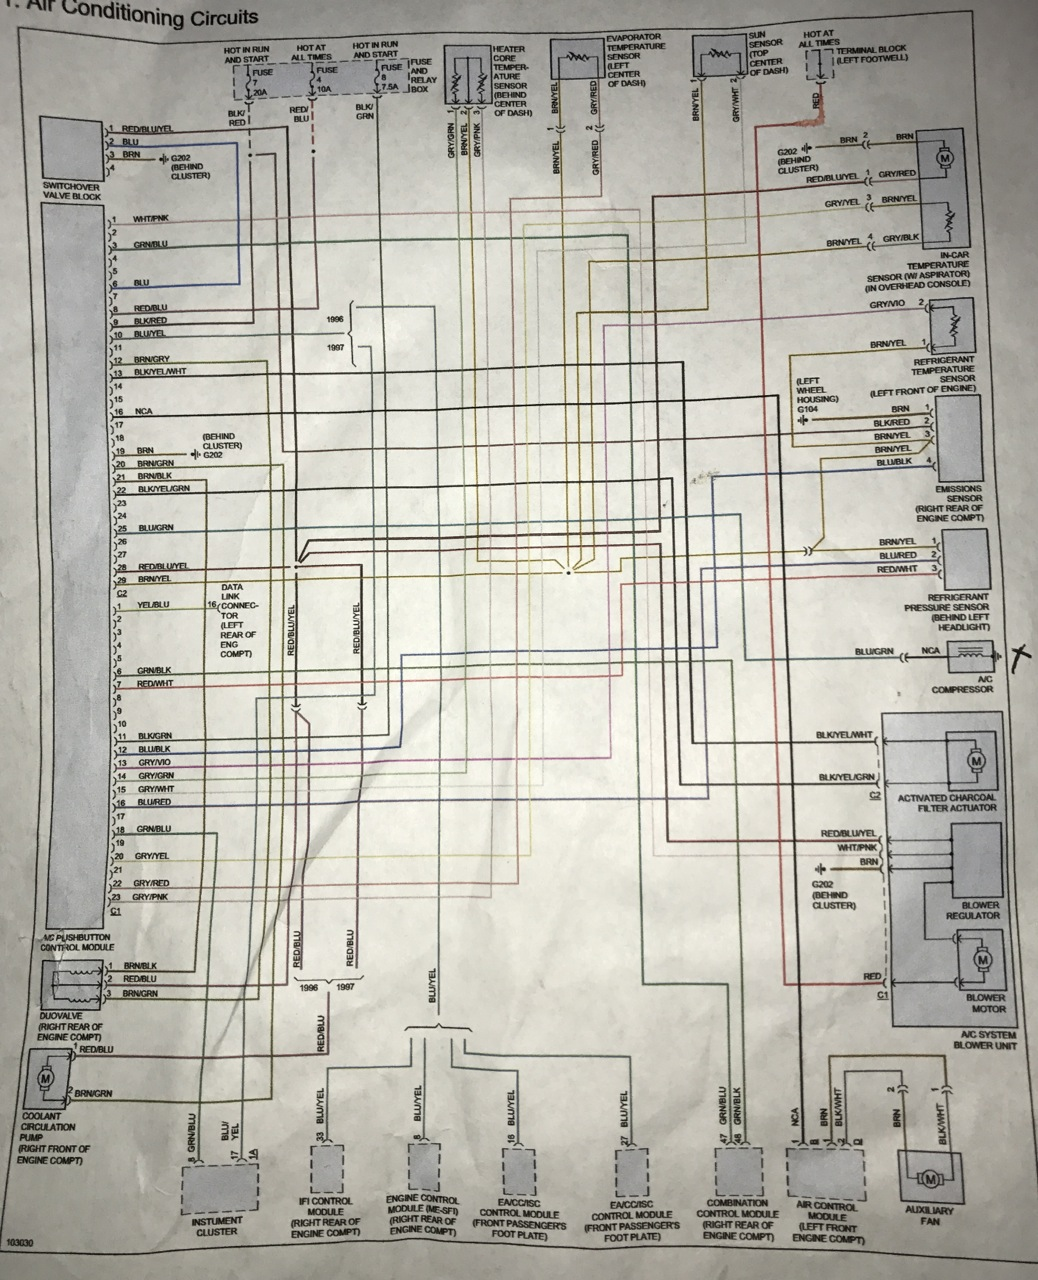 W210 Ac Wiring Diagram Not Lossing Mercedes Benz Control Flashing Page 2 Peachparts Forum Rh Com Air Conditioning Diagrams Home